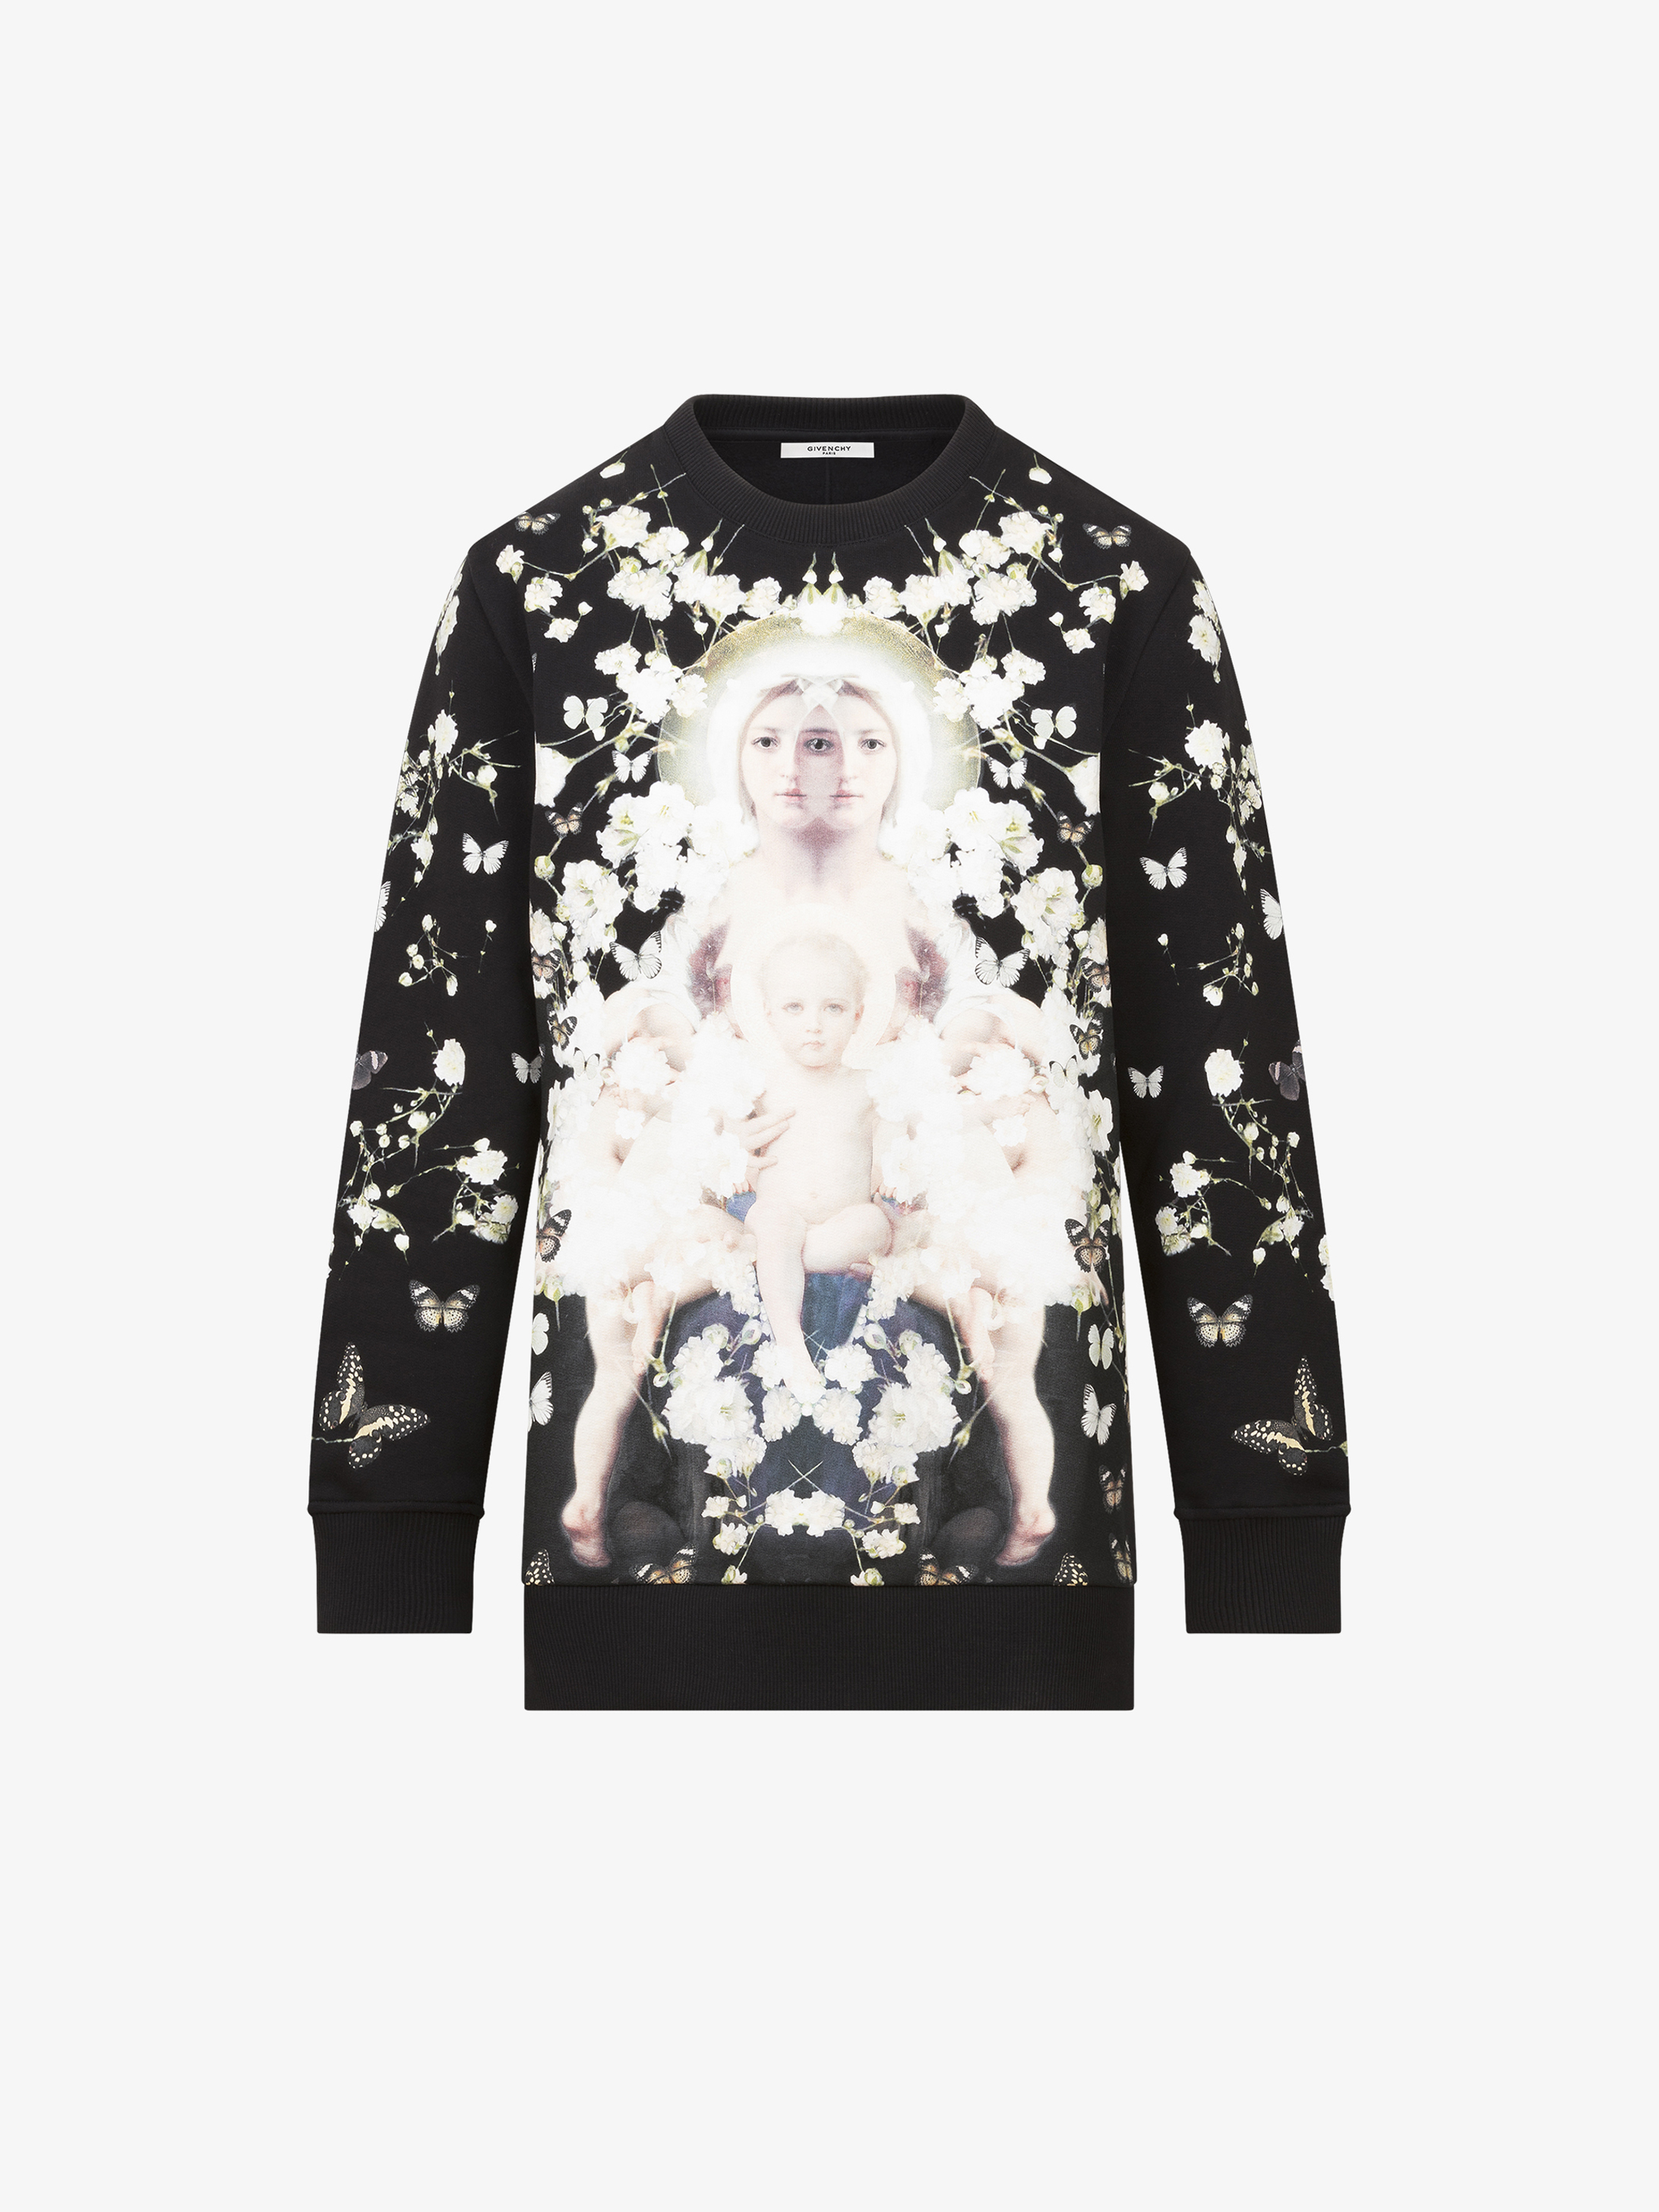 Baby's breath Madonna printed sweatshirt